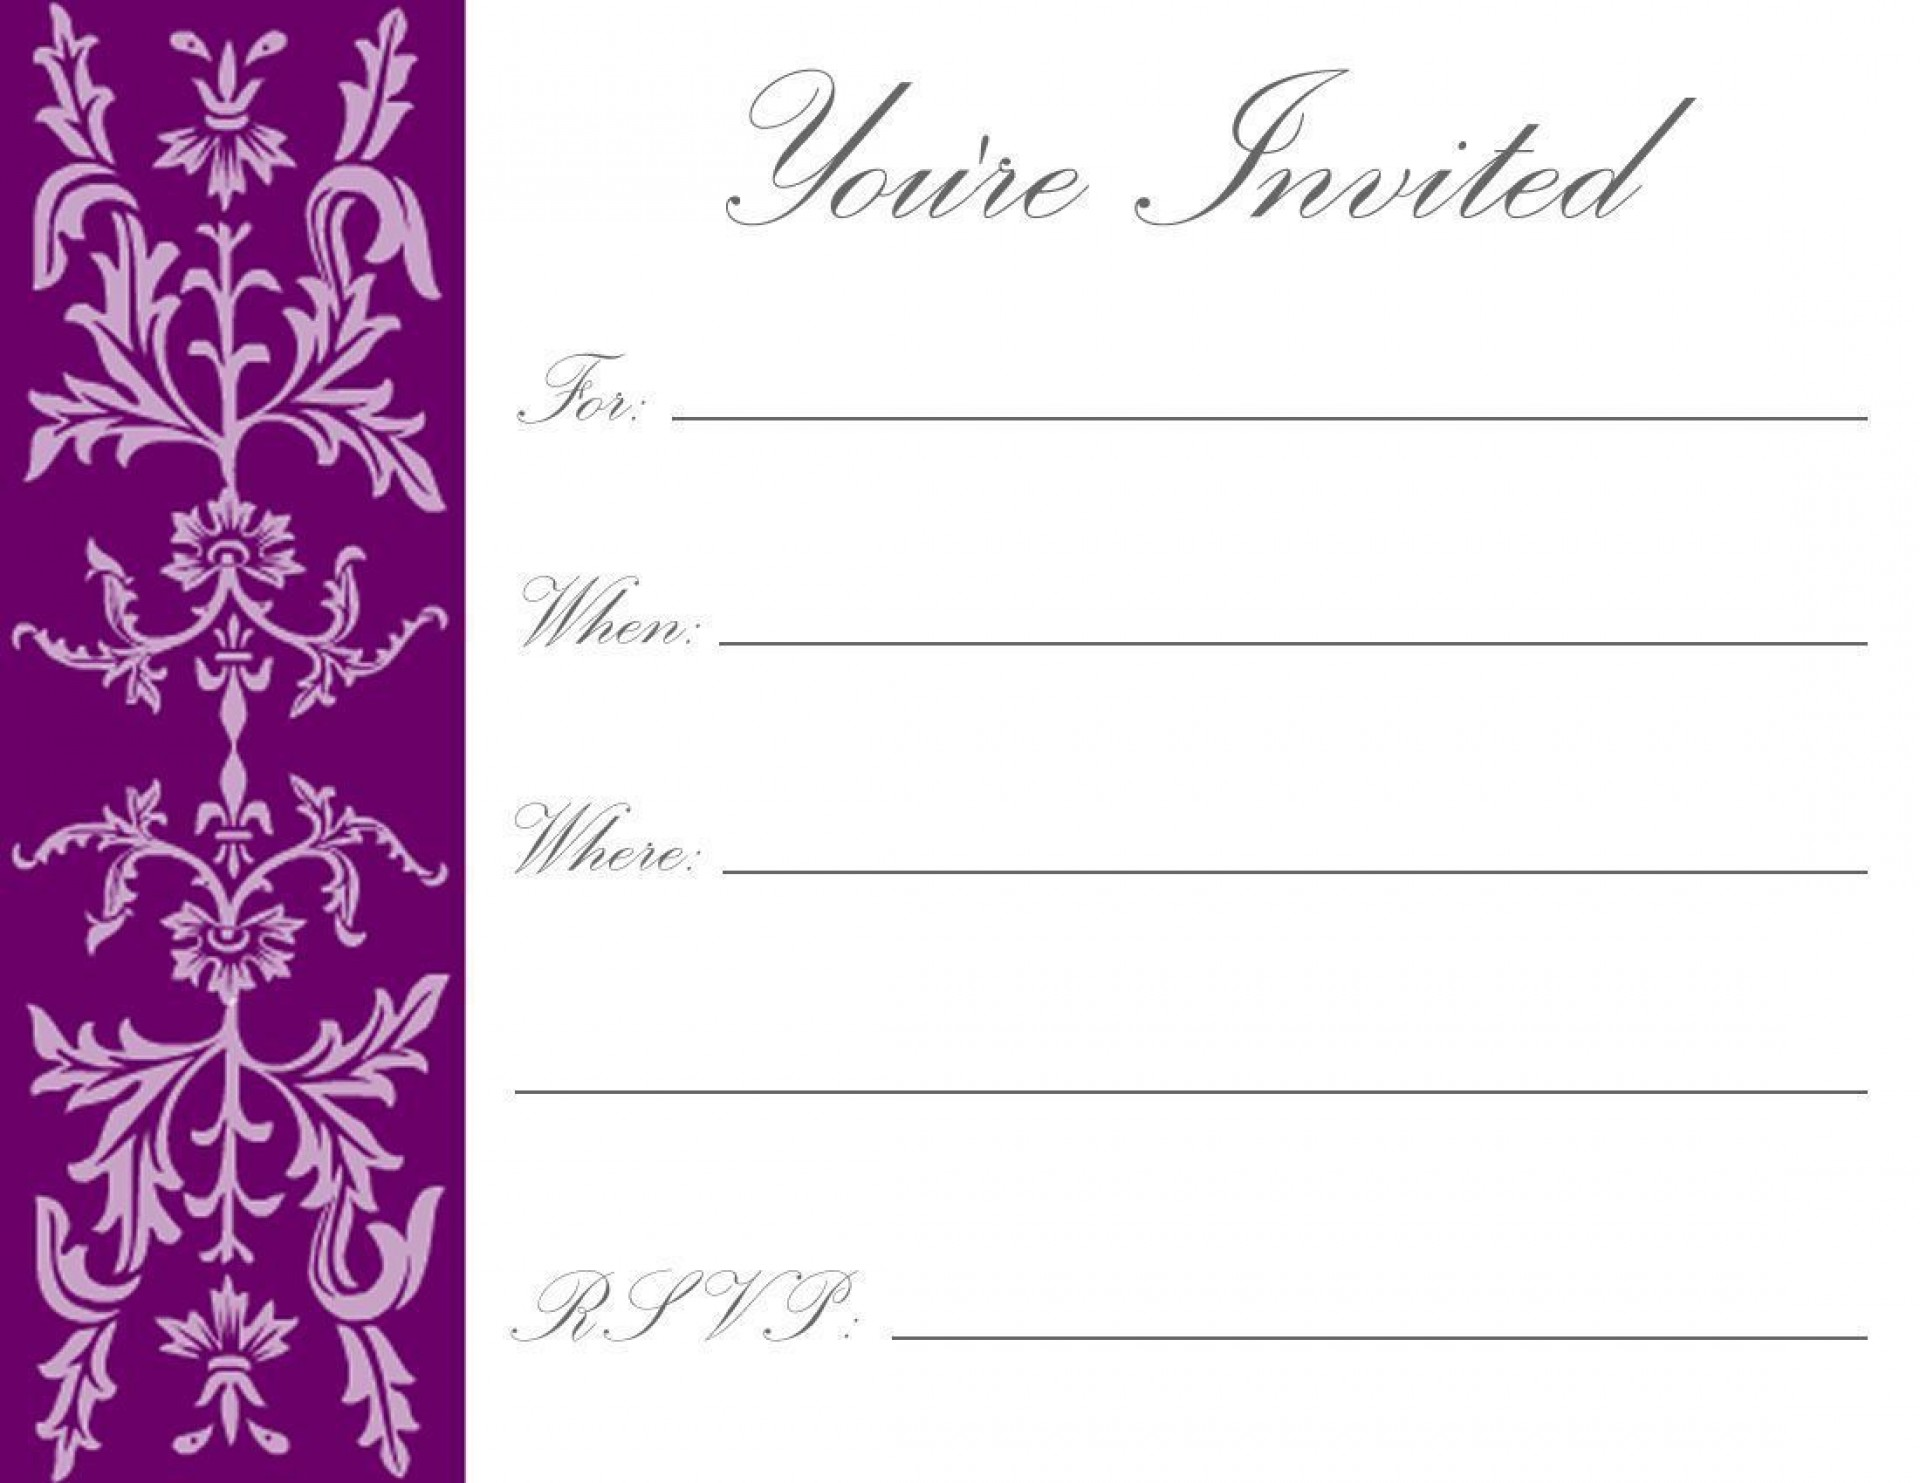 006 Breathtaking Free Online Printable Birthday Invitation Template High Definition  Templates Card Maker1920